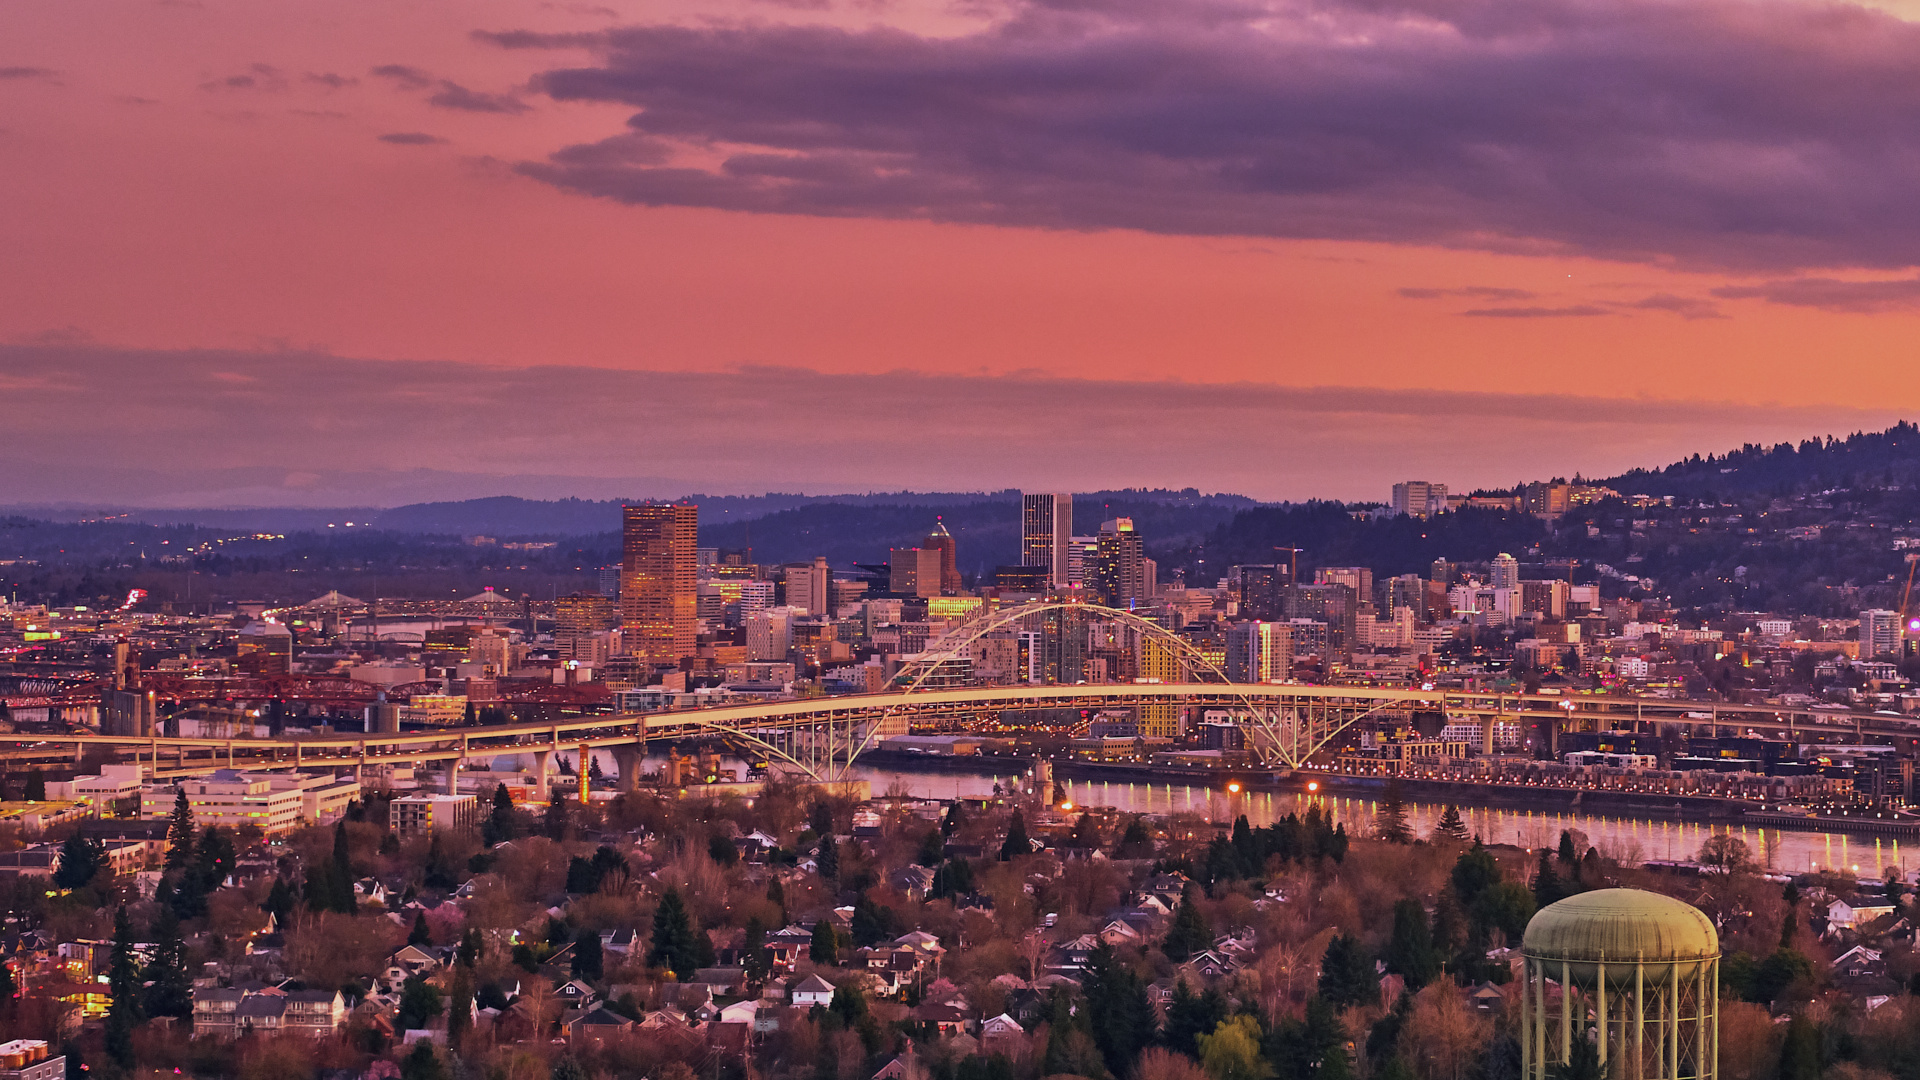 Sunset over Portland on a cold Winters evening